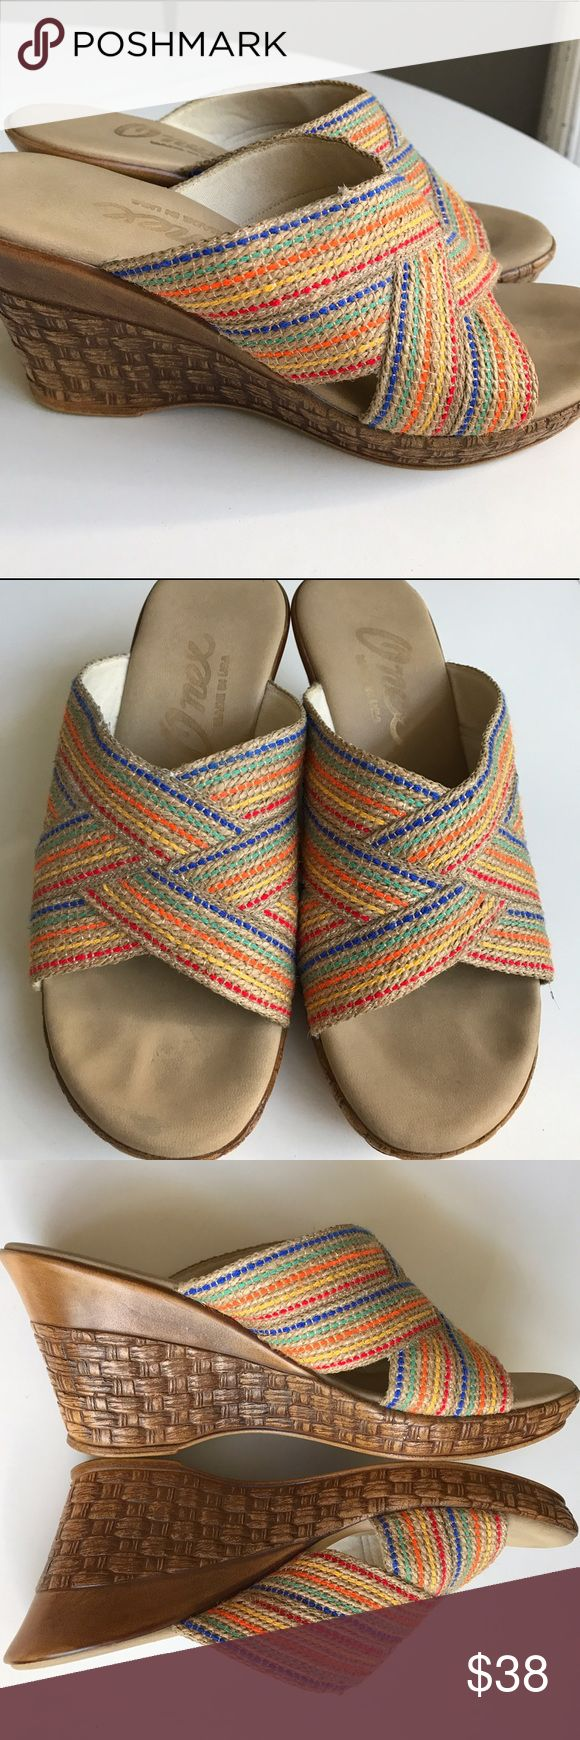 ONEX WEDGES The perfect Spring/Summer wedge. Slip on, comfy. Perfect to throw on n go or to add a splash of color. Gently worn💜made in USA Onex Shoes Wedges